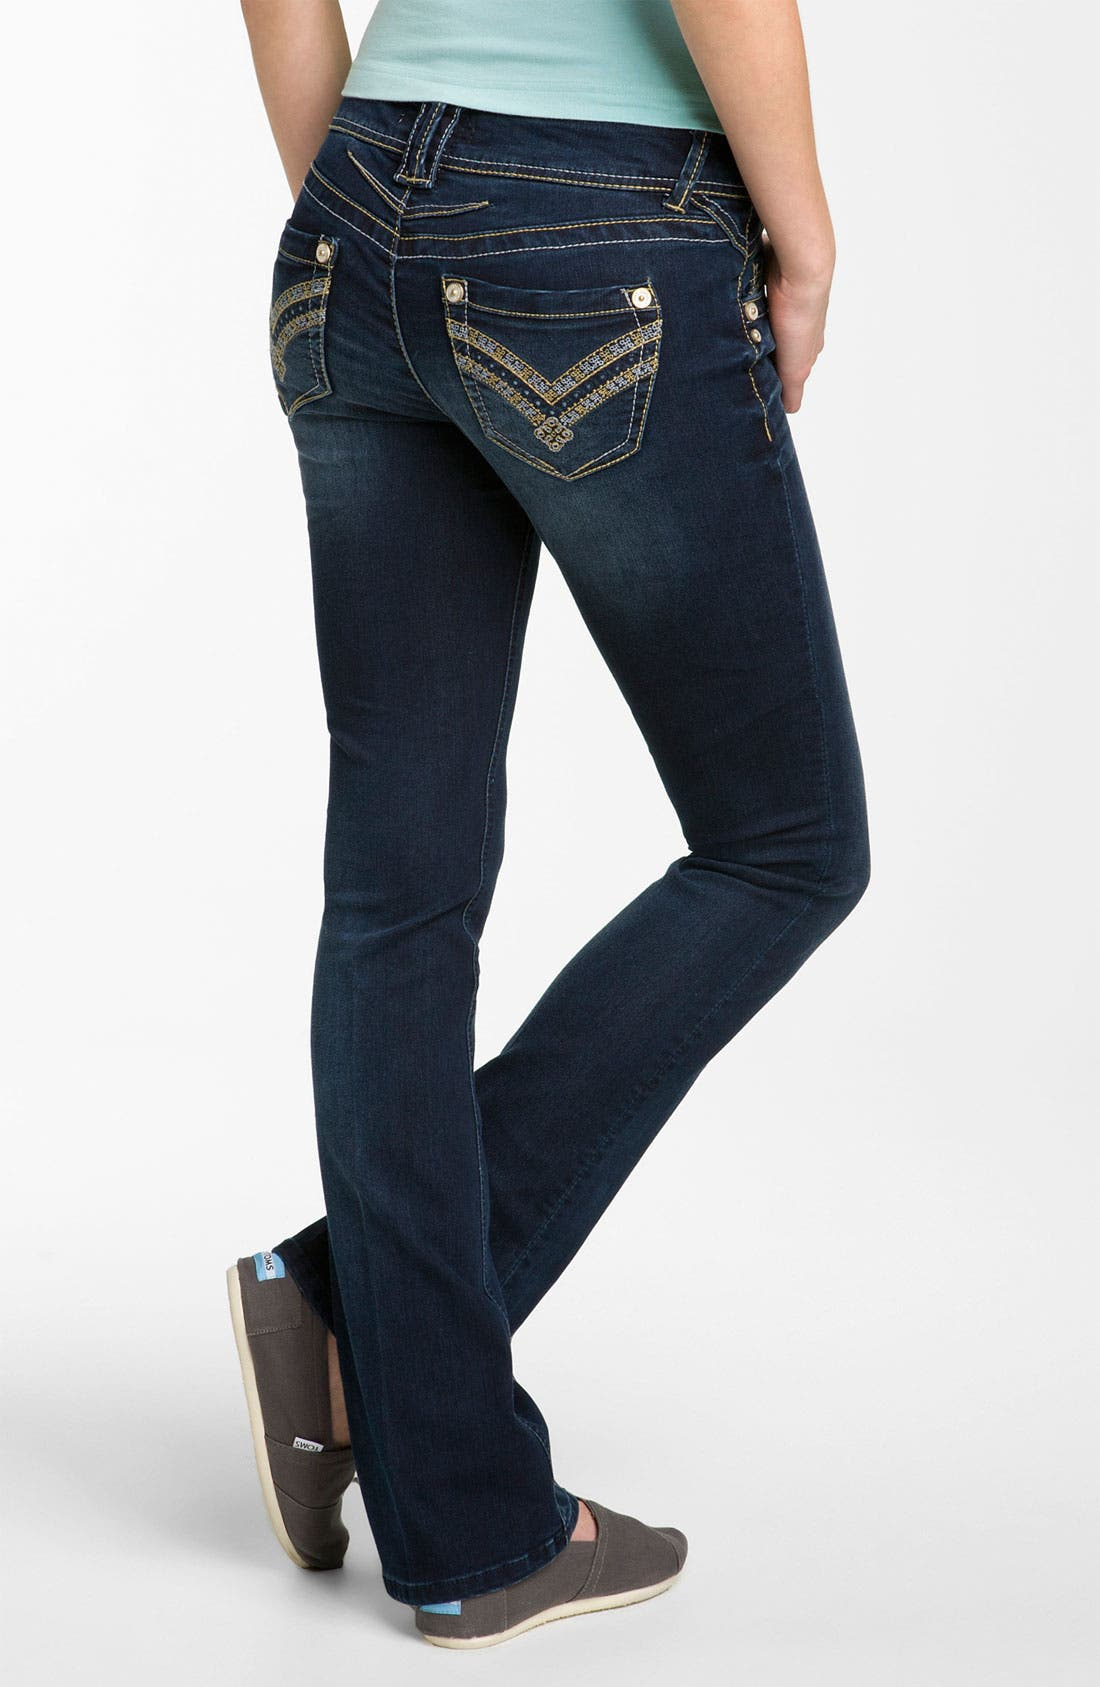 Main Image - Artisan Crafted 'Itty Bitty' Bootcut Jeans  (Juniors)